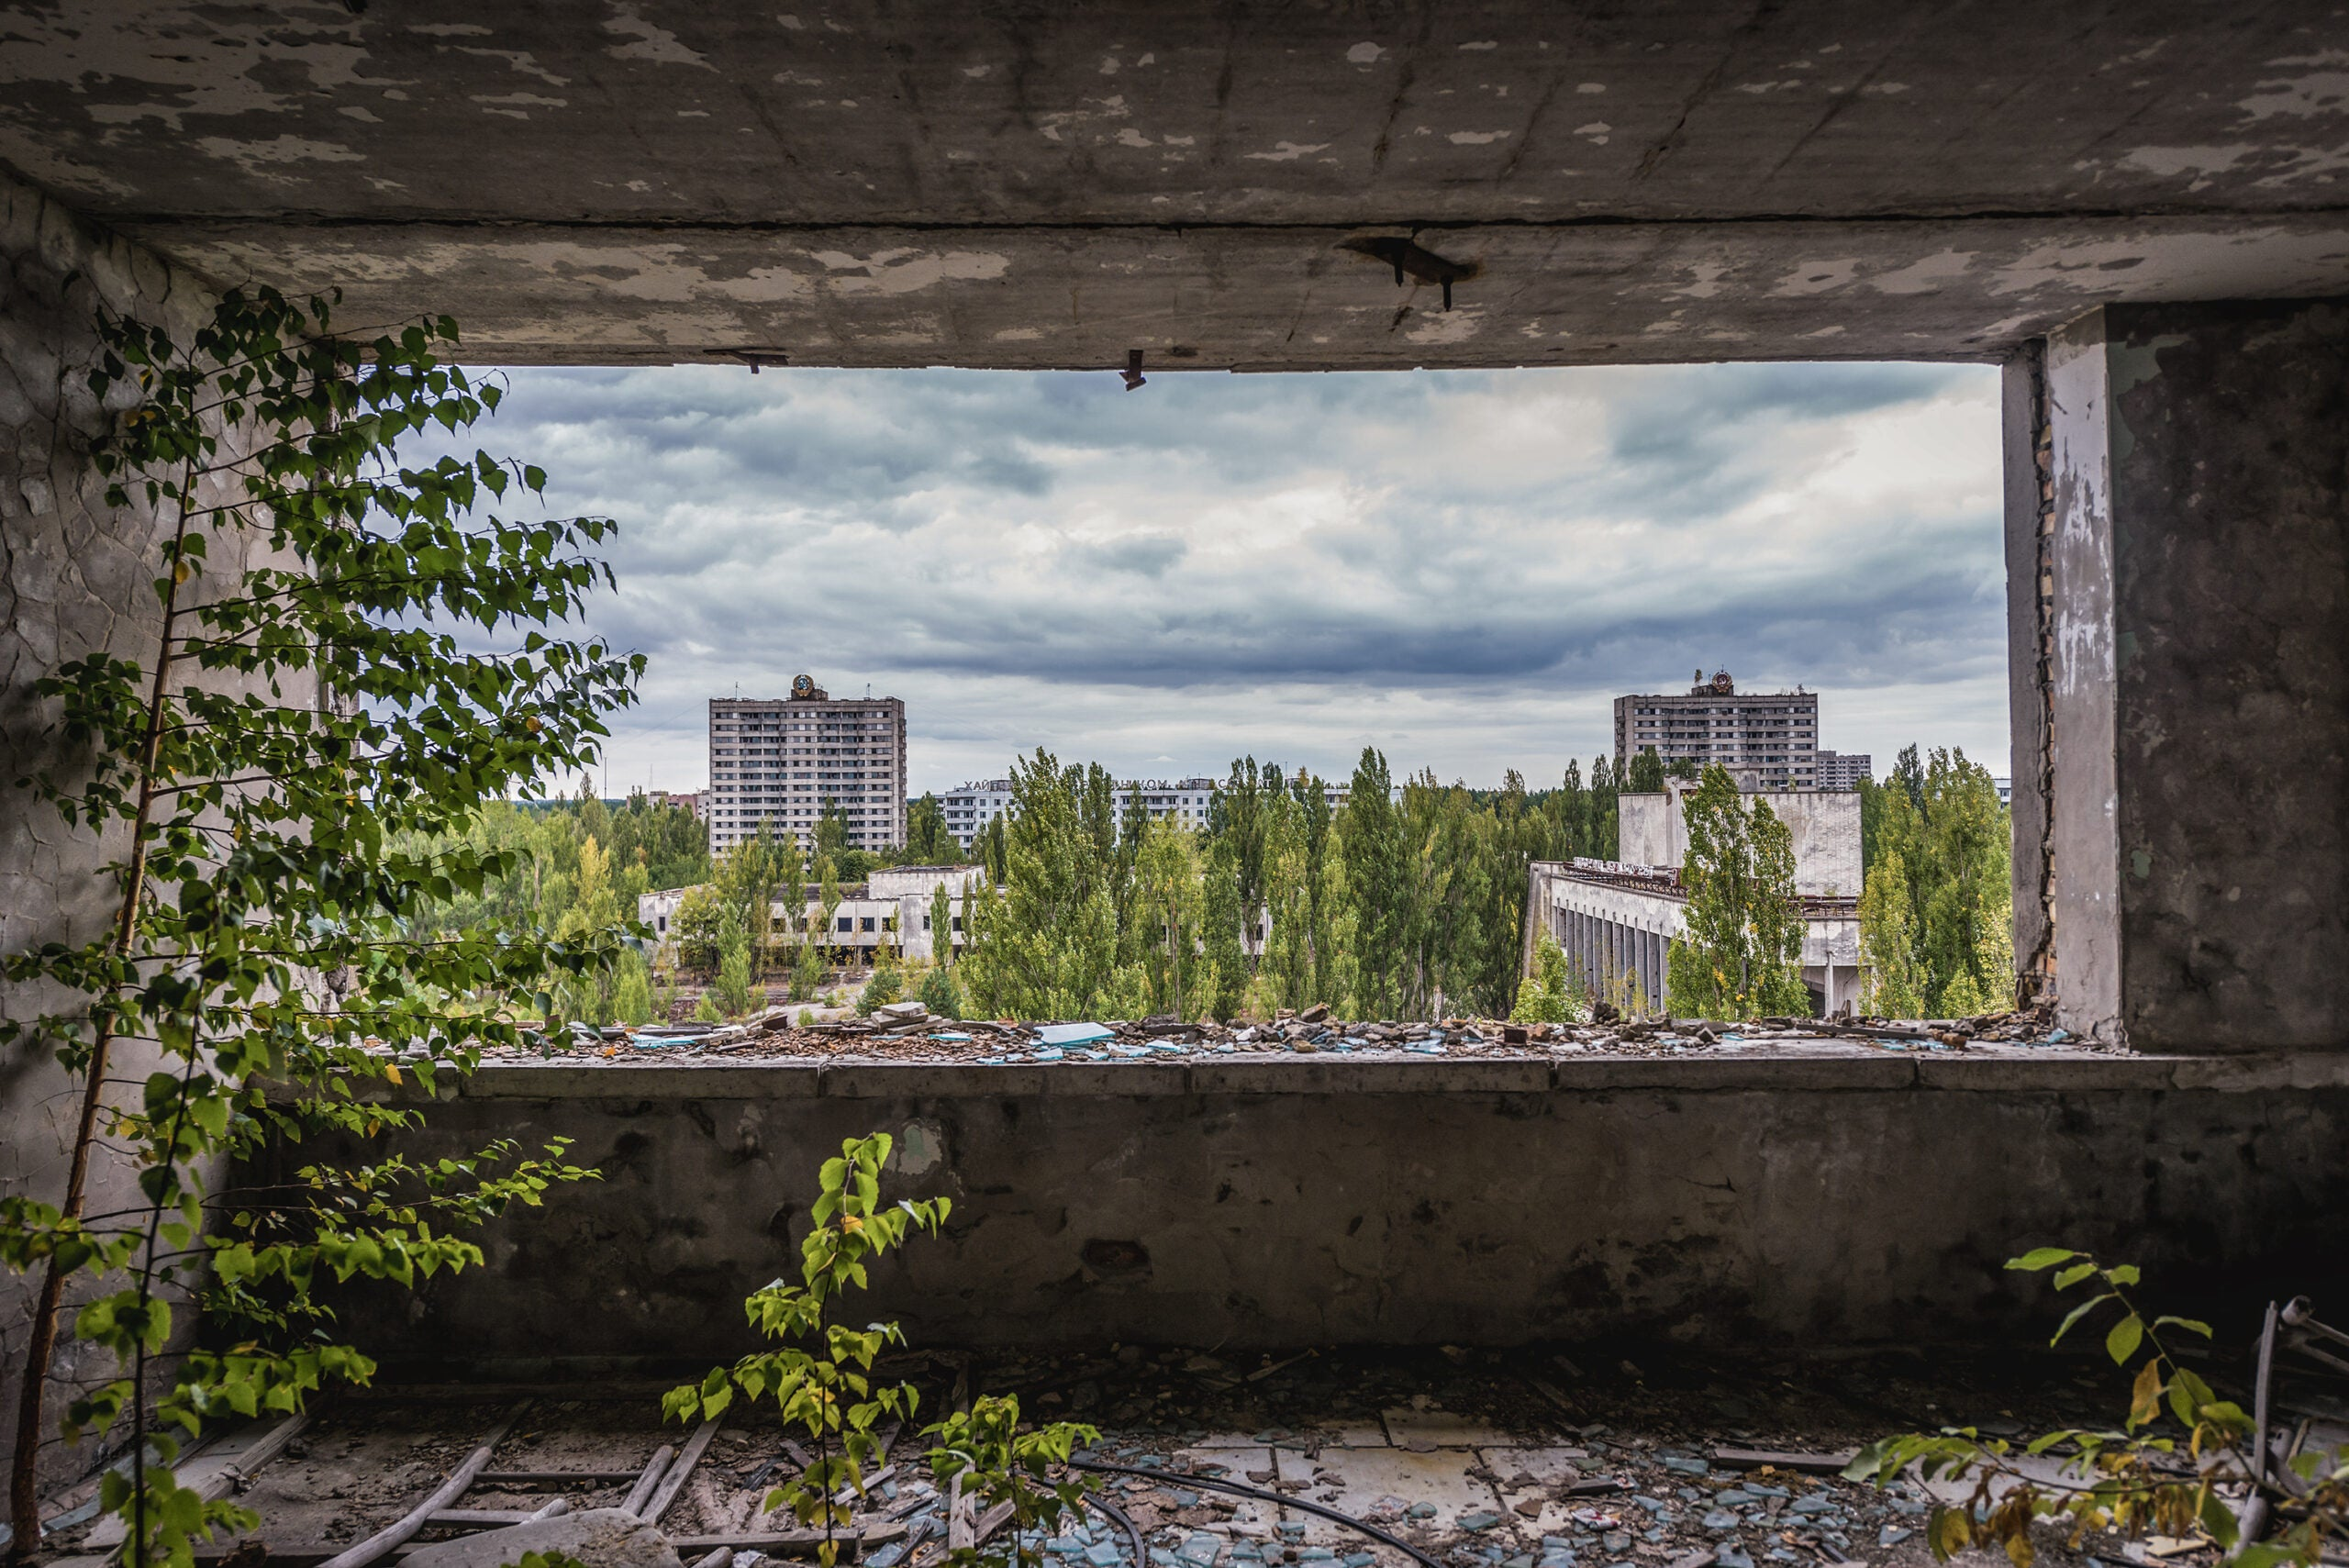 Plants couldn't run away from Chernobyl—but that's what saved them